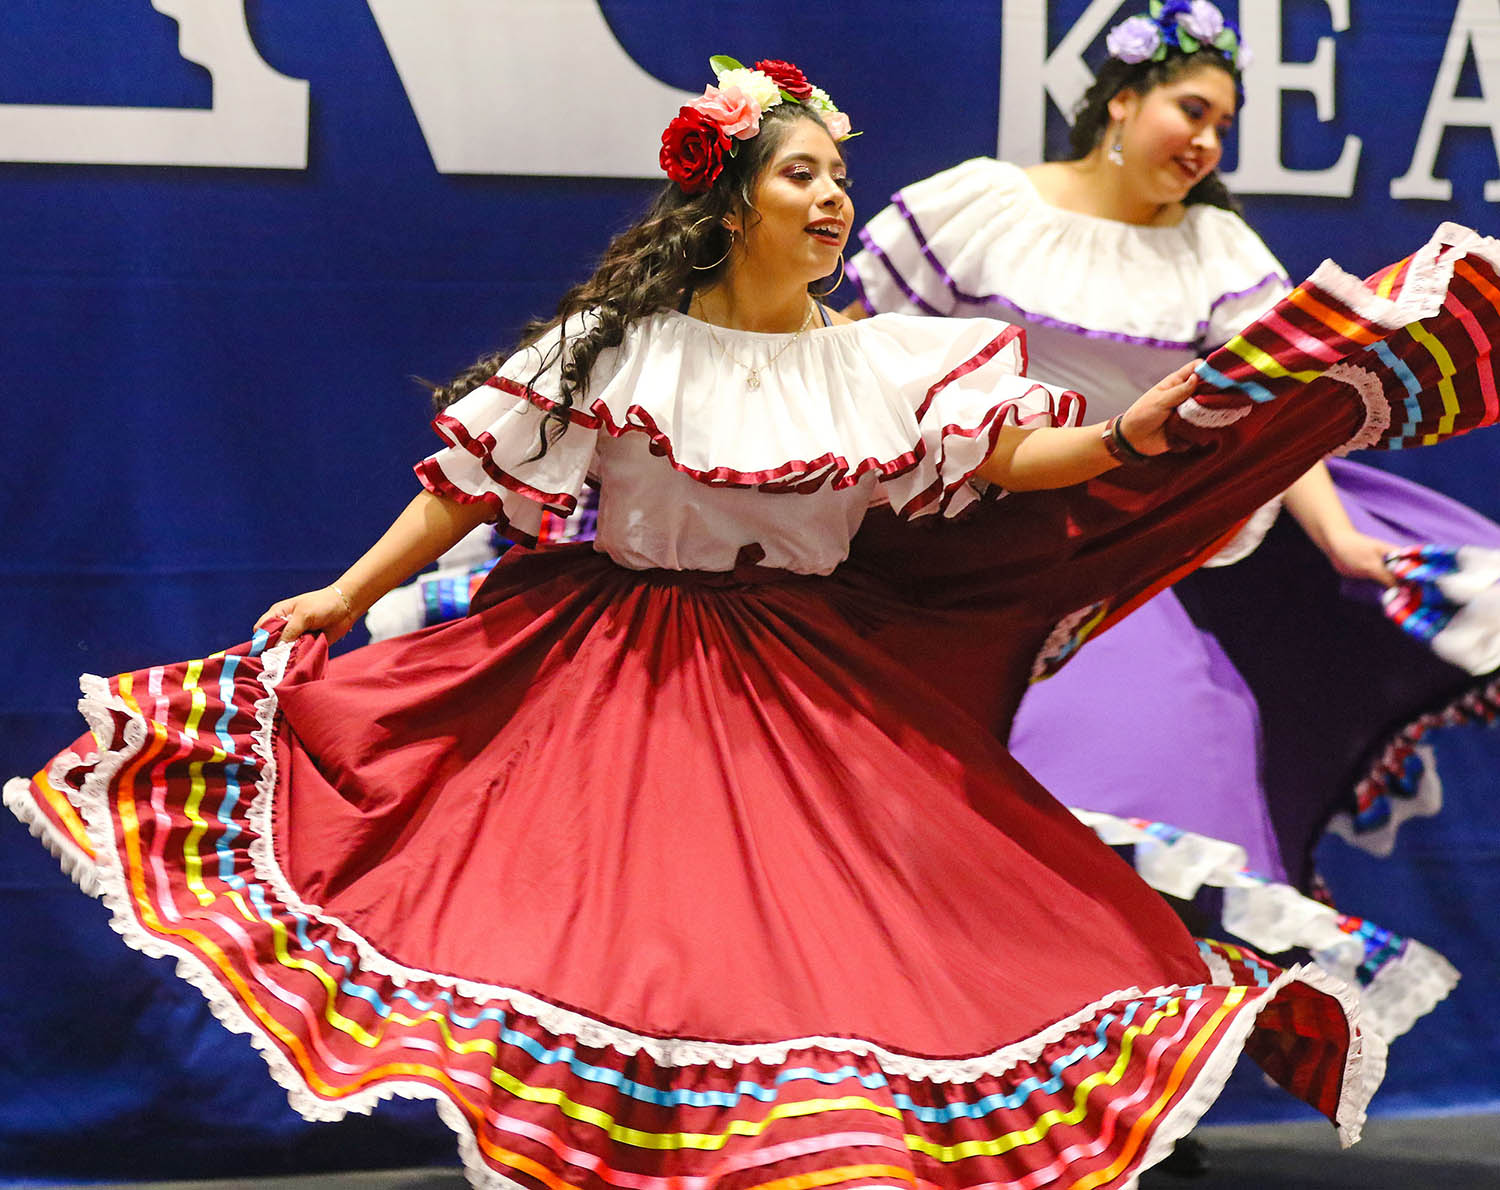 In addition to delicious dishes, the annual Scott D. Morris International Food and Cultural Festival features performances from numerous UNK students.